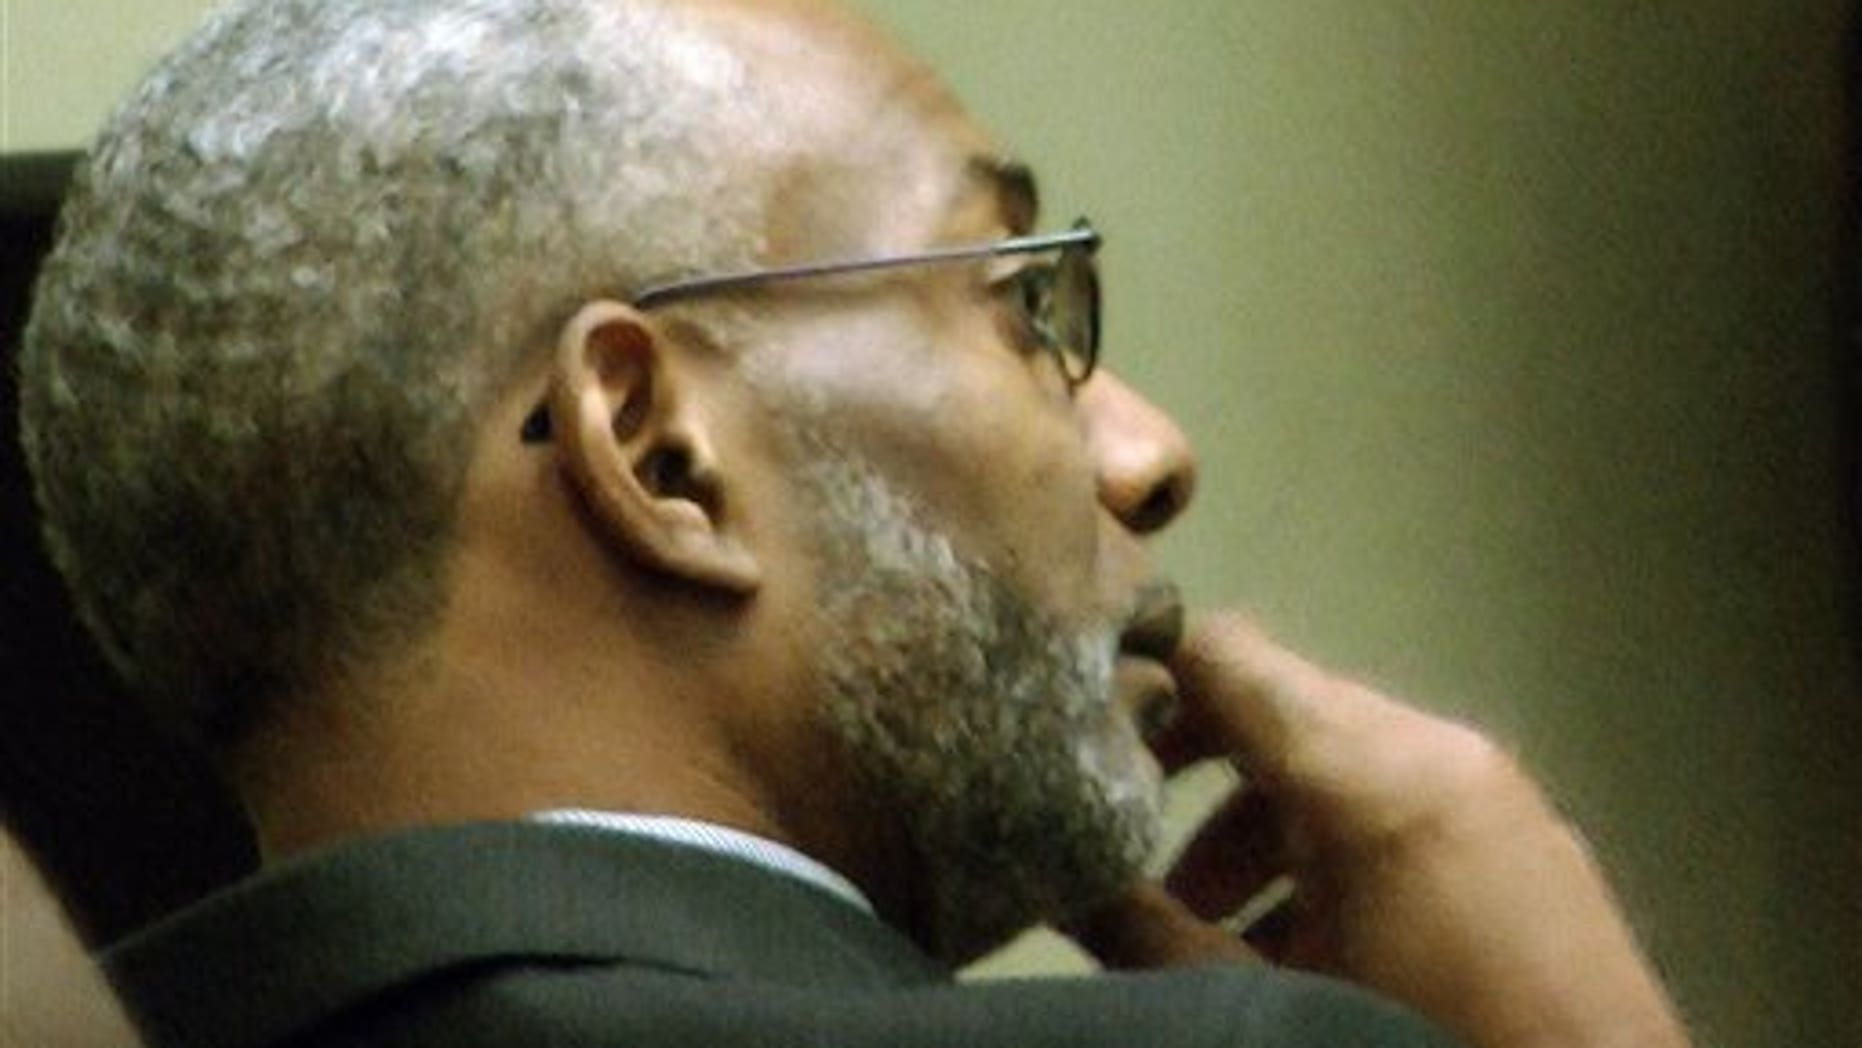 Oct. 16: In this image taken from video, Rev. Juan McFarland listens to testimony during in a court hearing about the future of Shiloh Missionary Baptist Church in Montgomery, Ala.